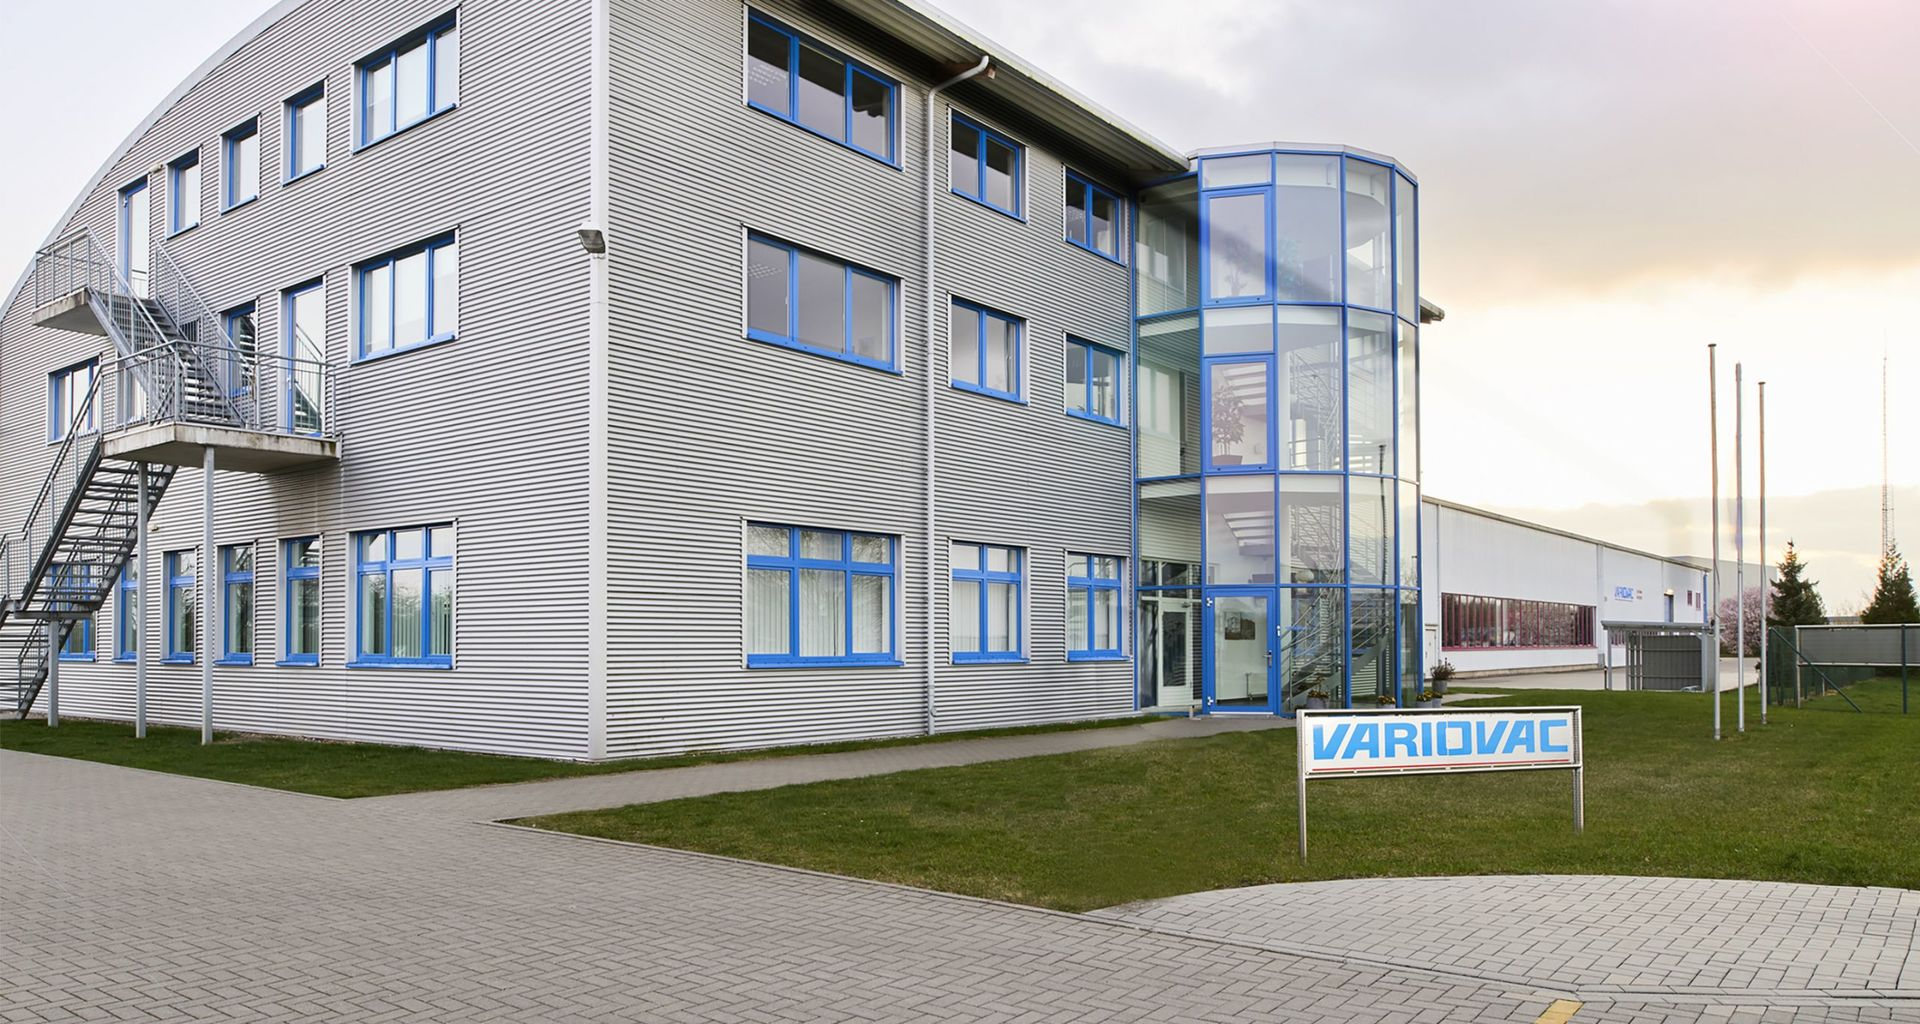 VARIOVAC Firmensitz in Zarrentin am Schaalsee